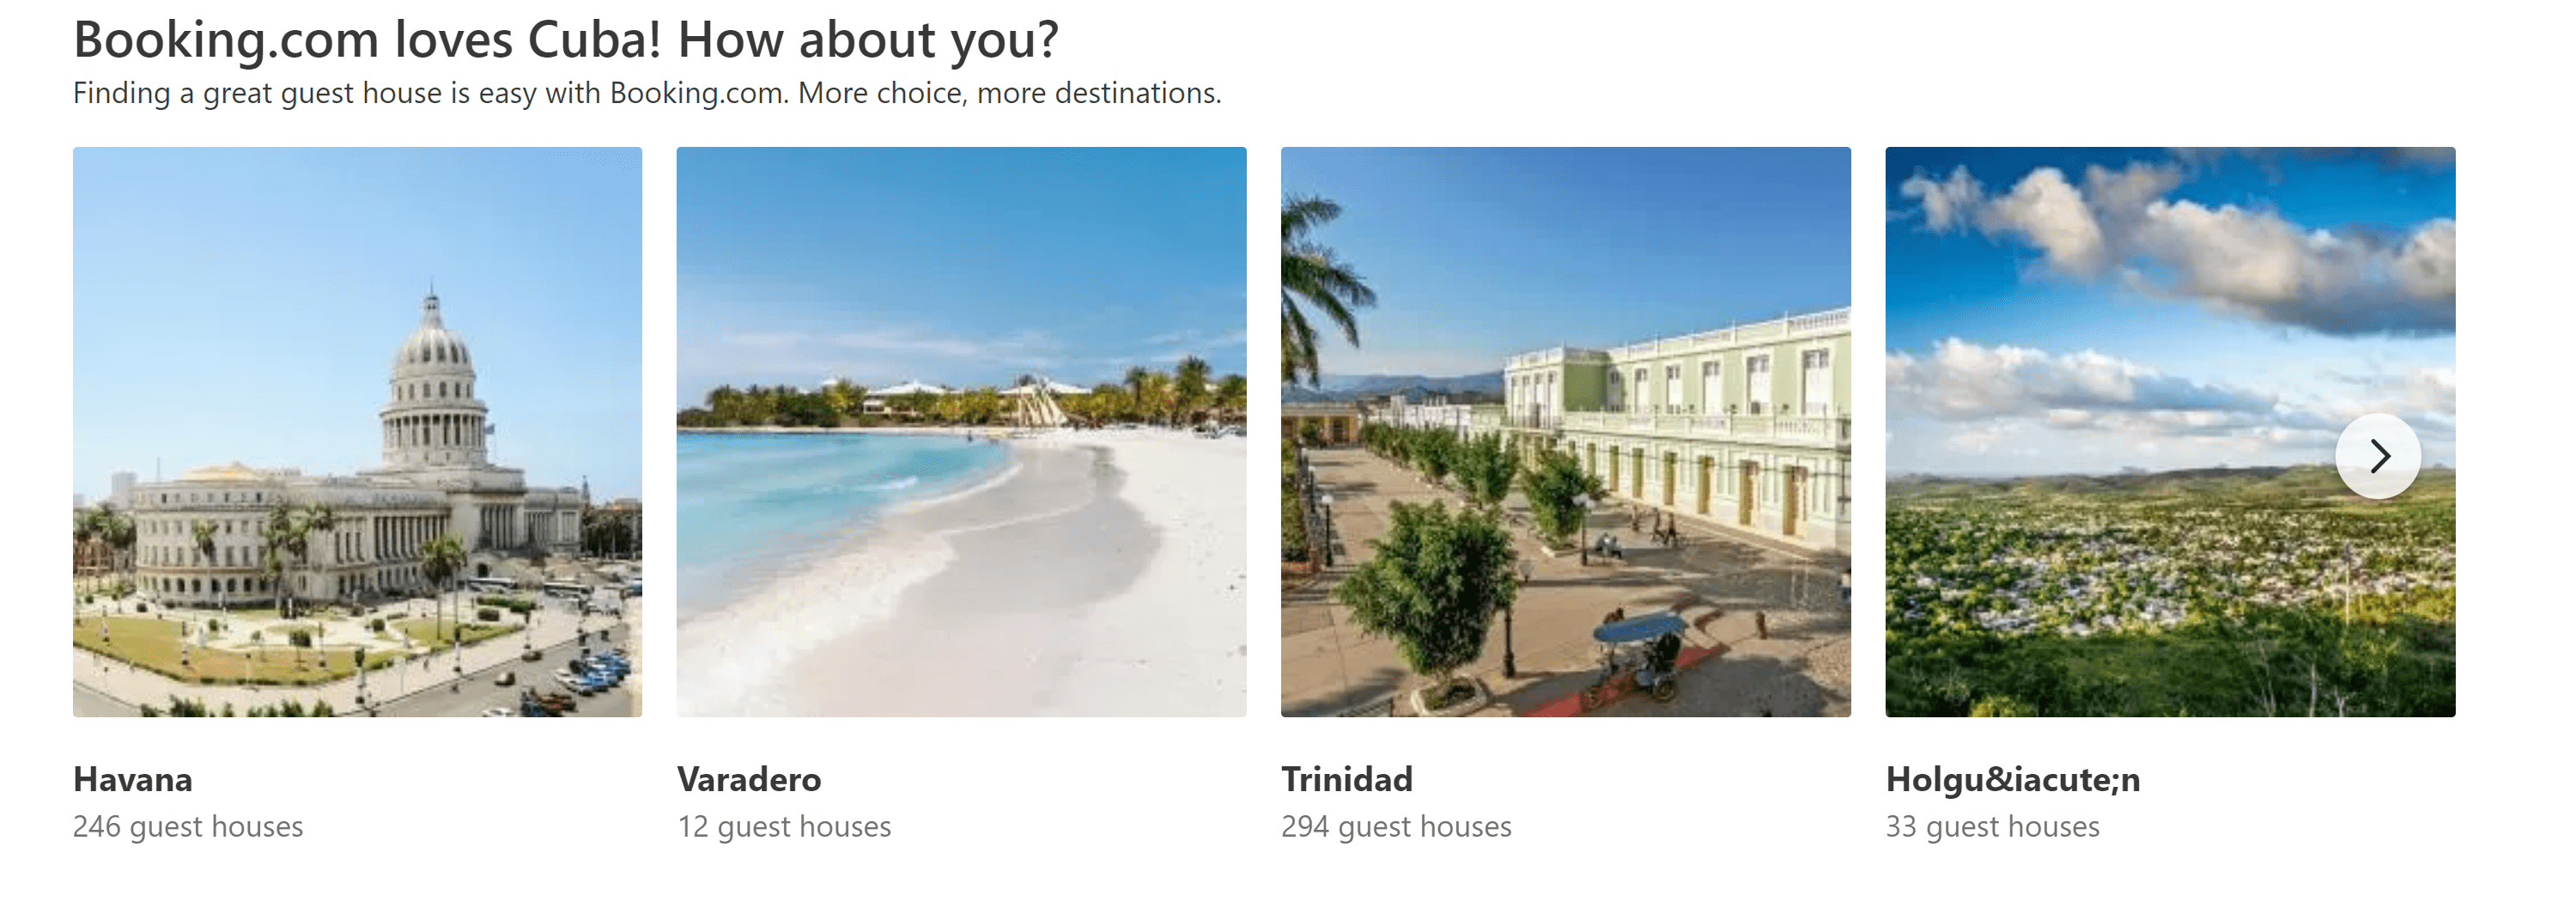 "Booking promotes properties in Cuba and mentions that ""it loves Cuba."""